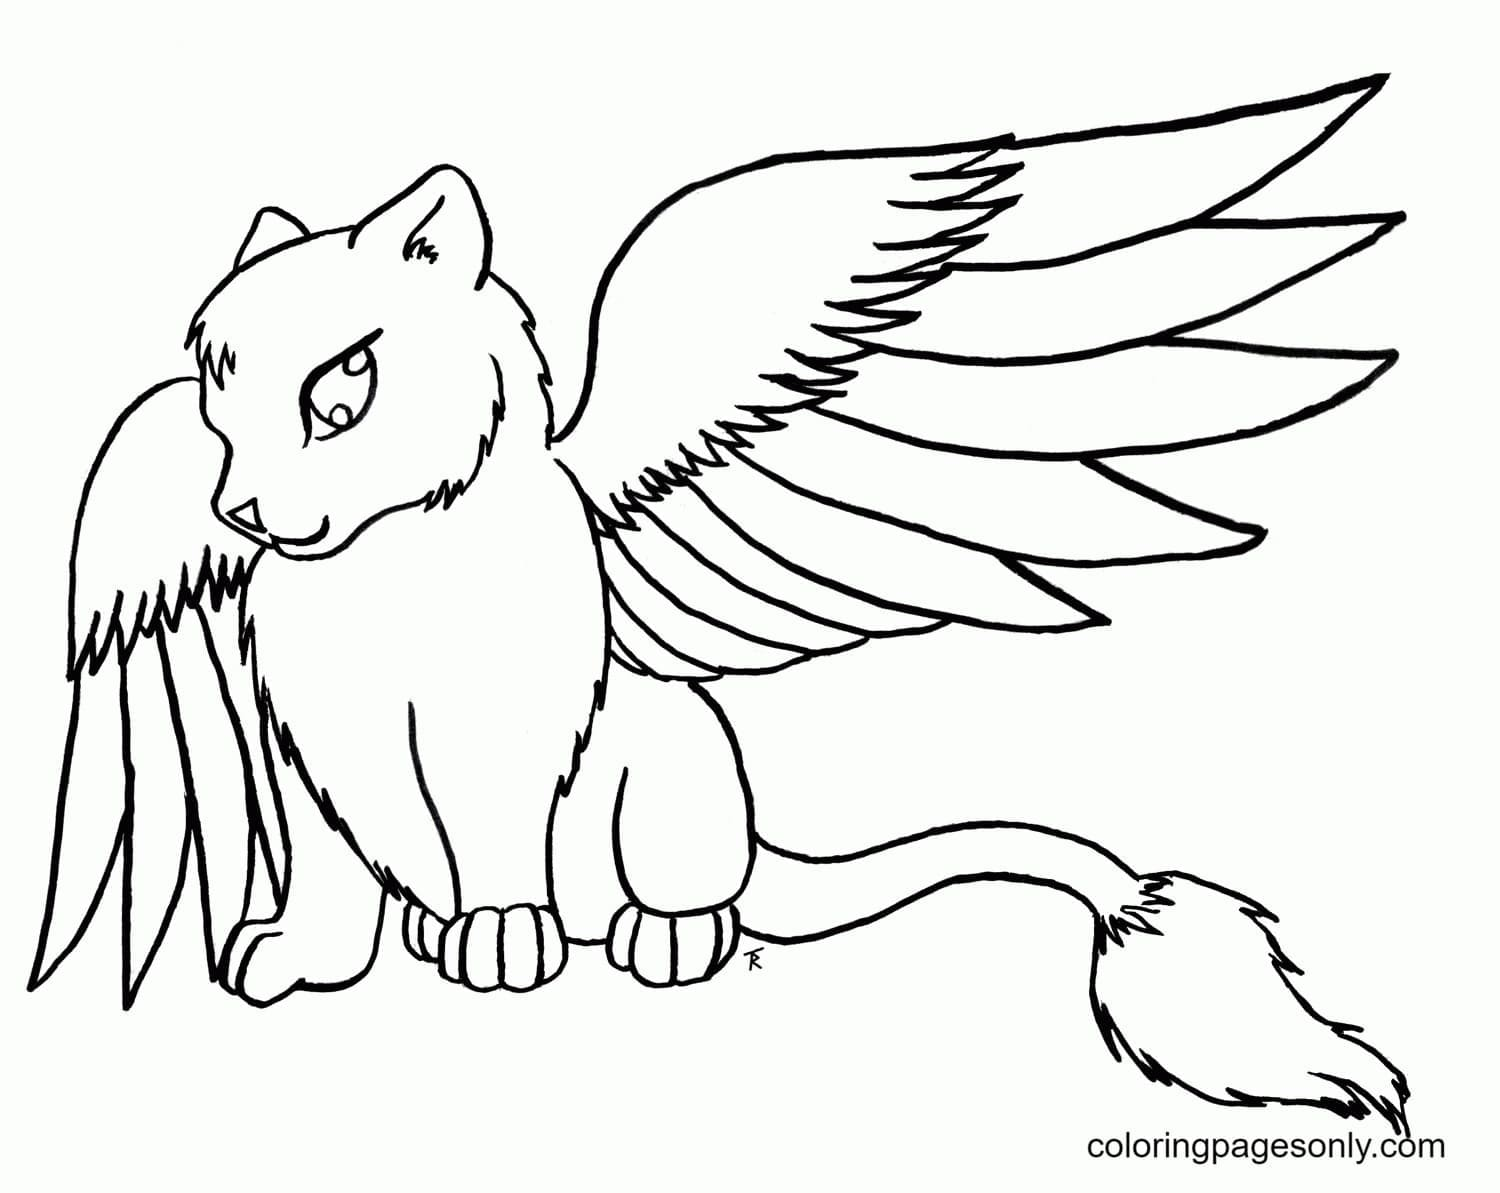 Cute Winged Wolf Coloring Page